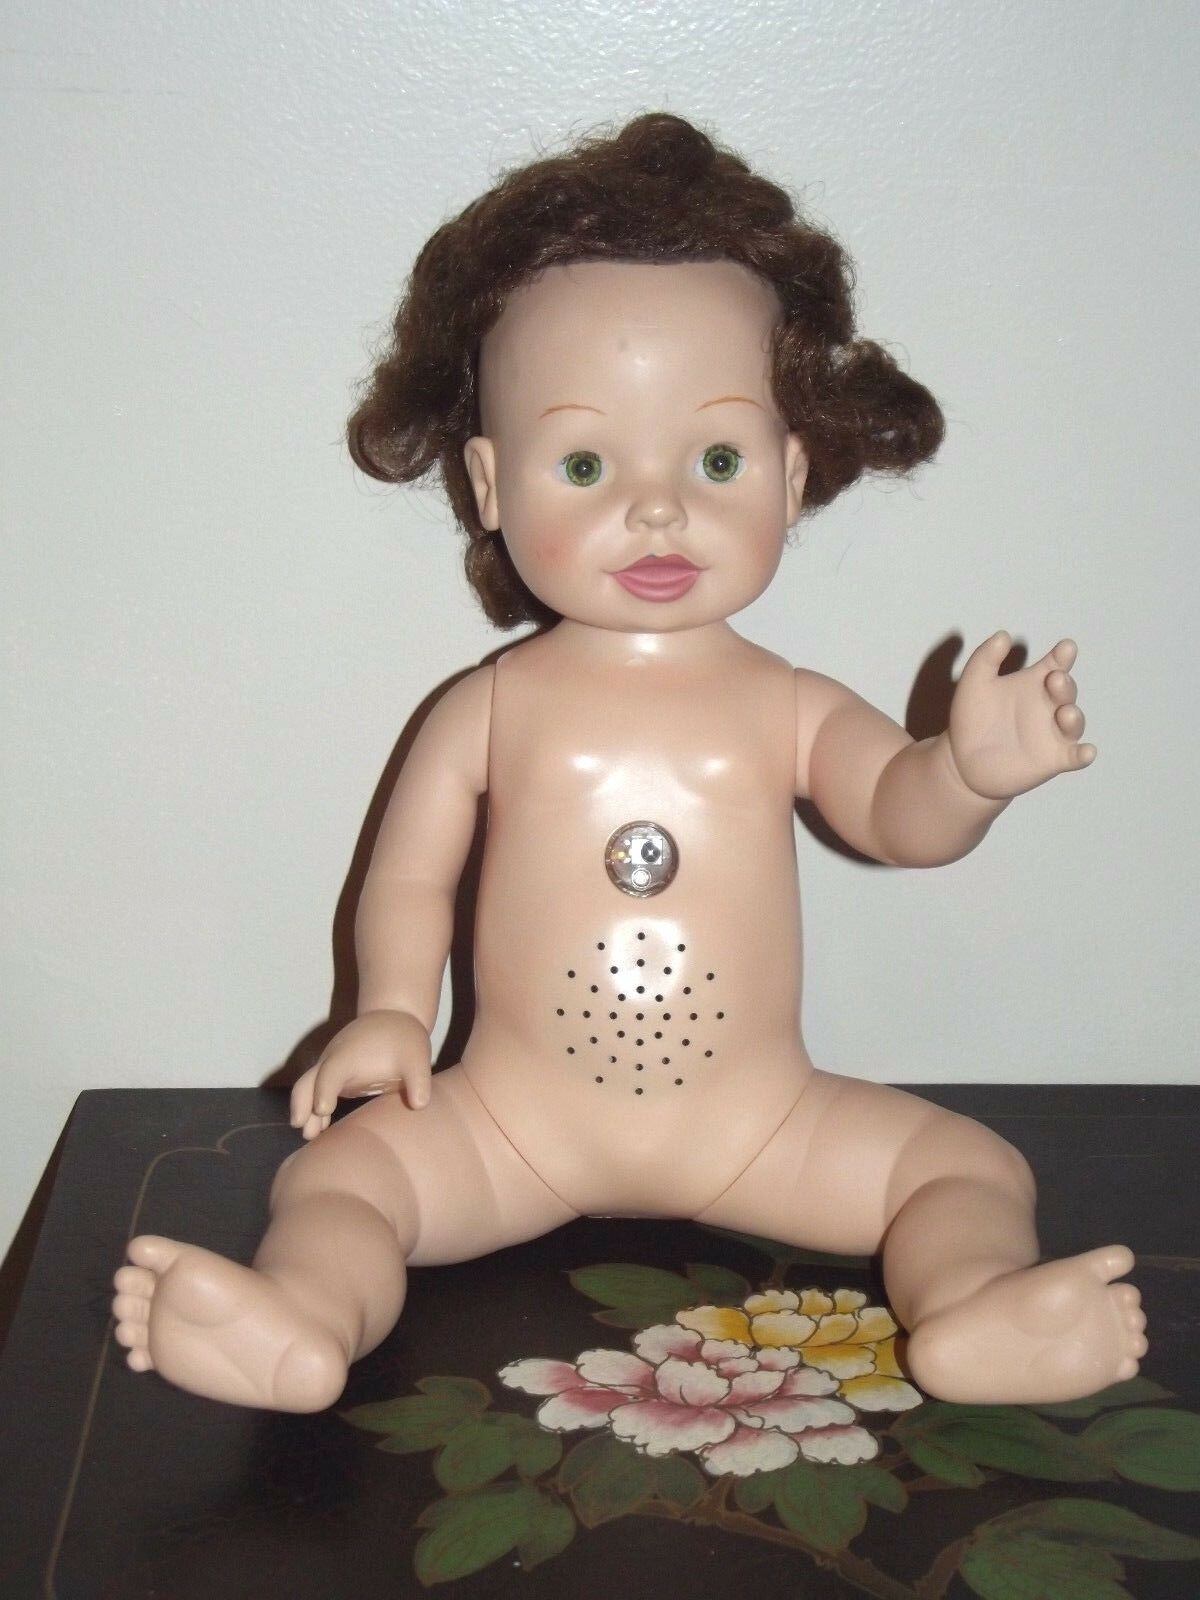 2000 Playmates Amazing Babies Smart Response System- Interactive Doll!